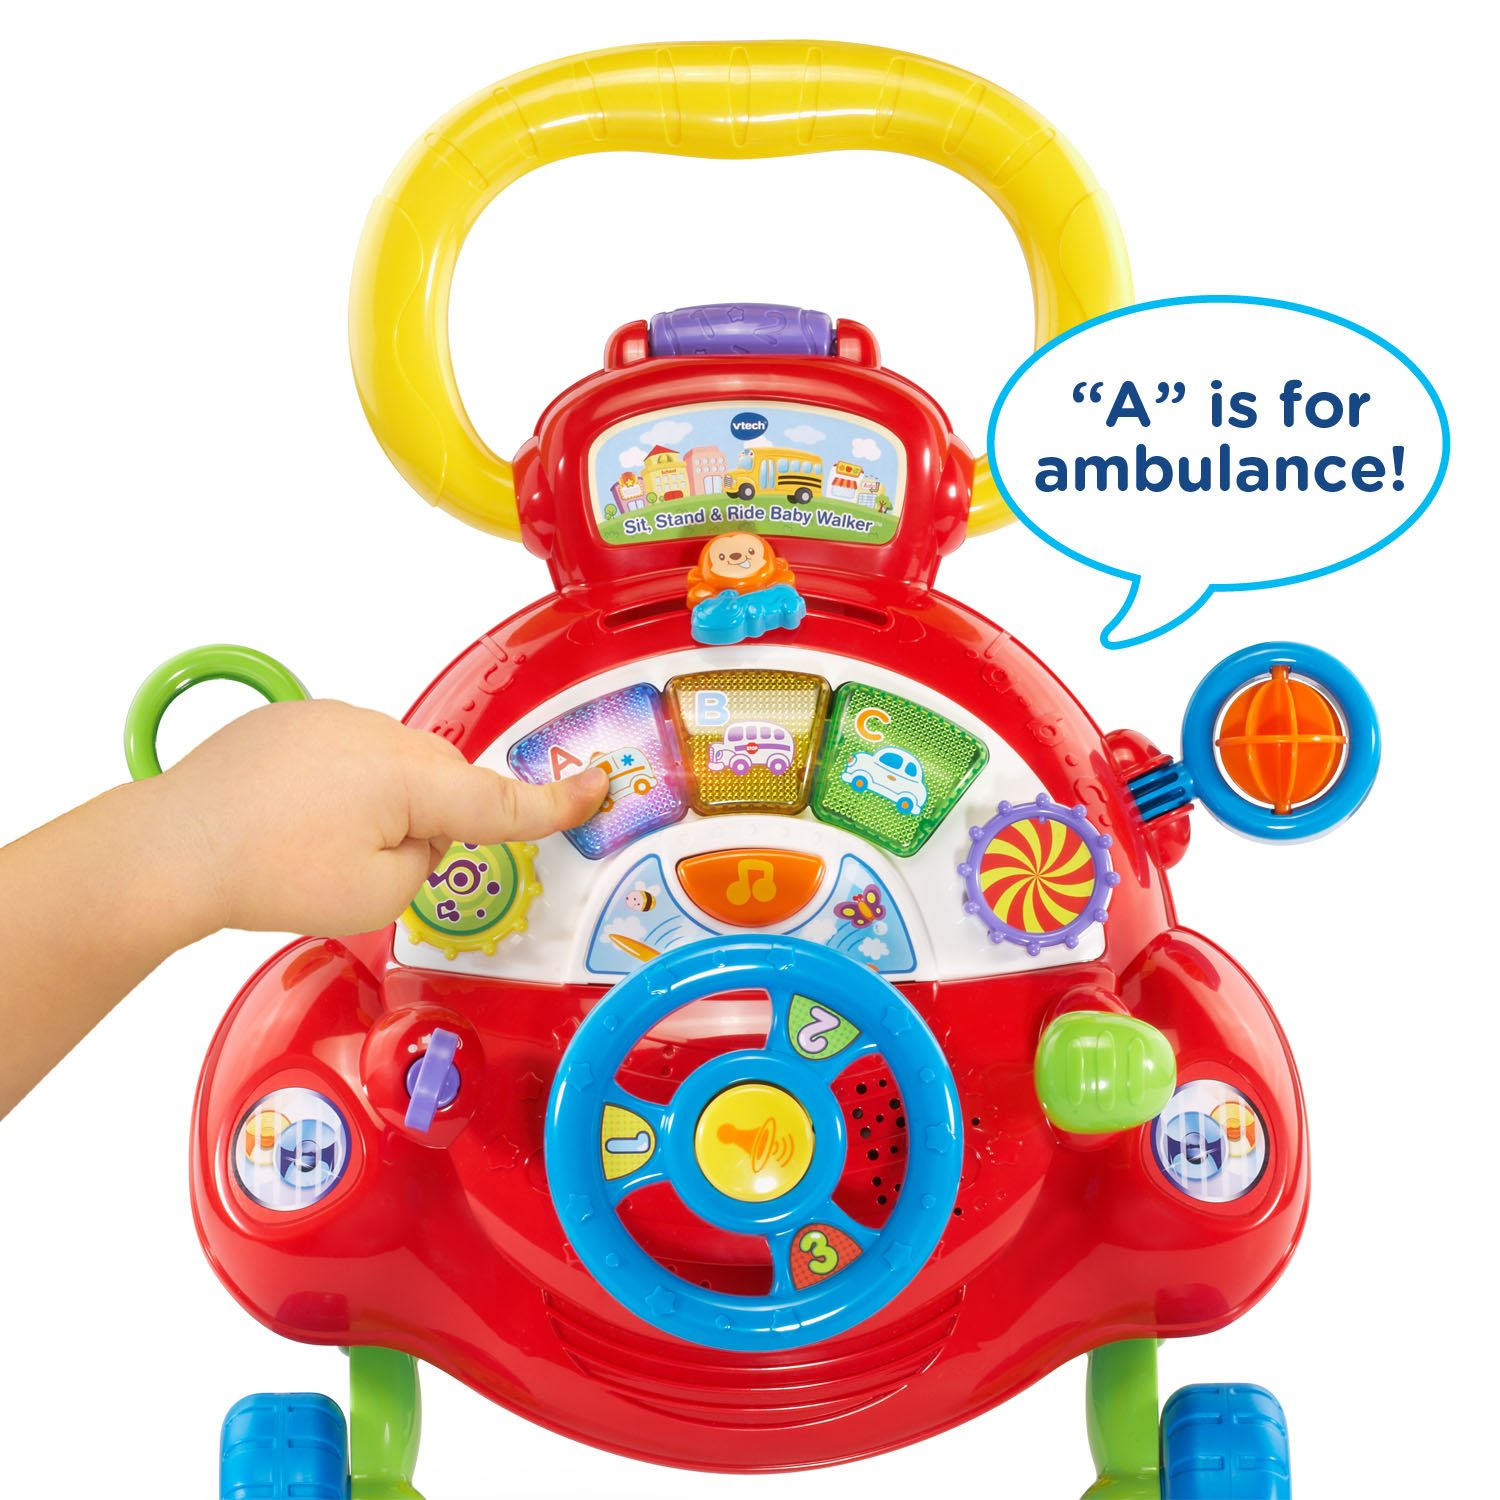 VTech Sit, Stand and Ride Baby Walker (Frustration Free Packaging) (Amazon Exclusive) by VTech (Image #3)